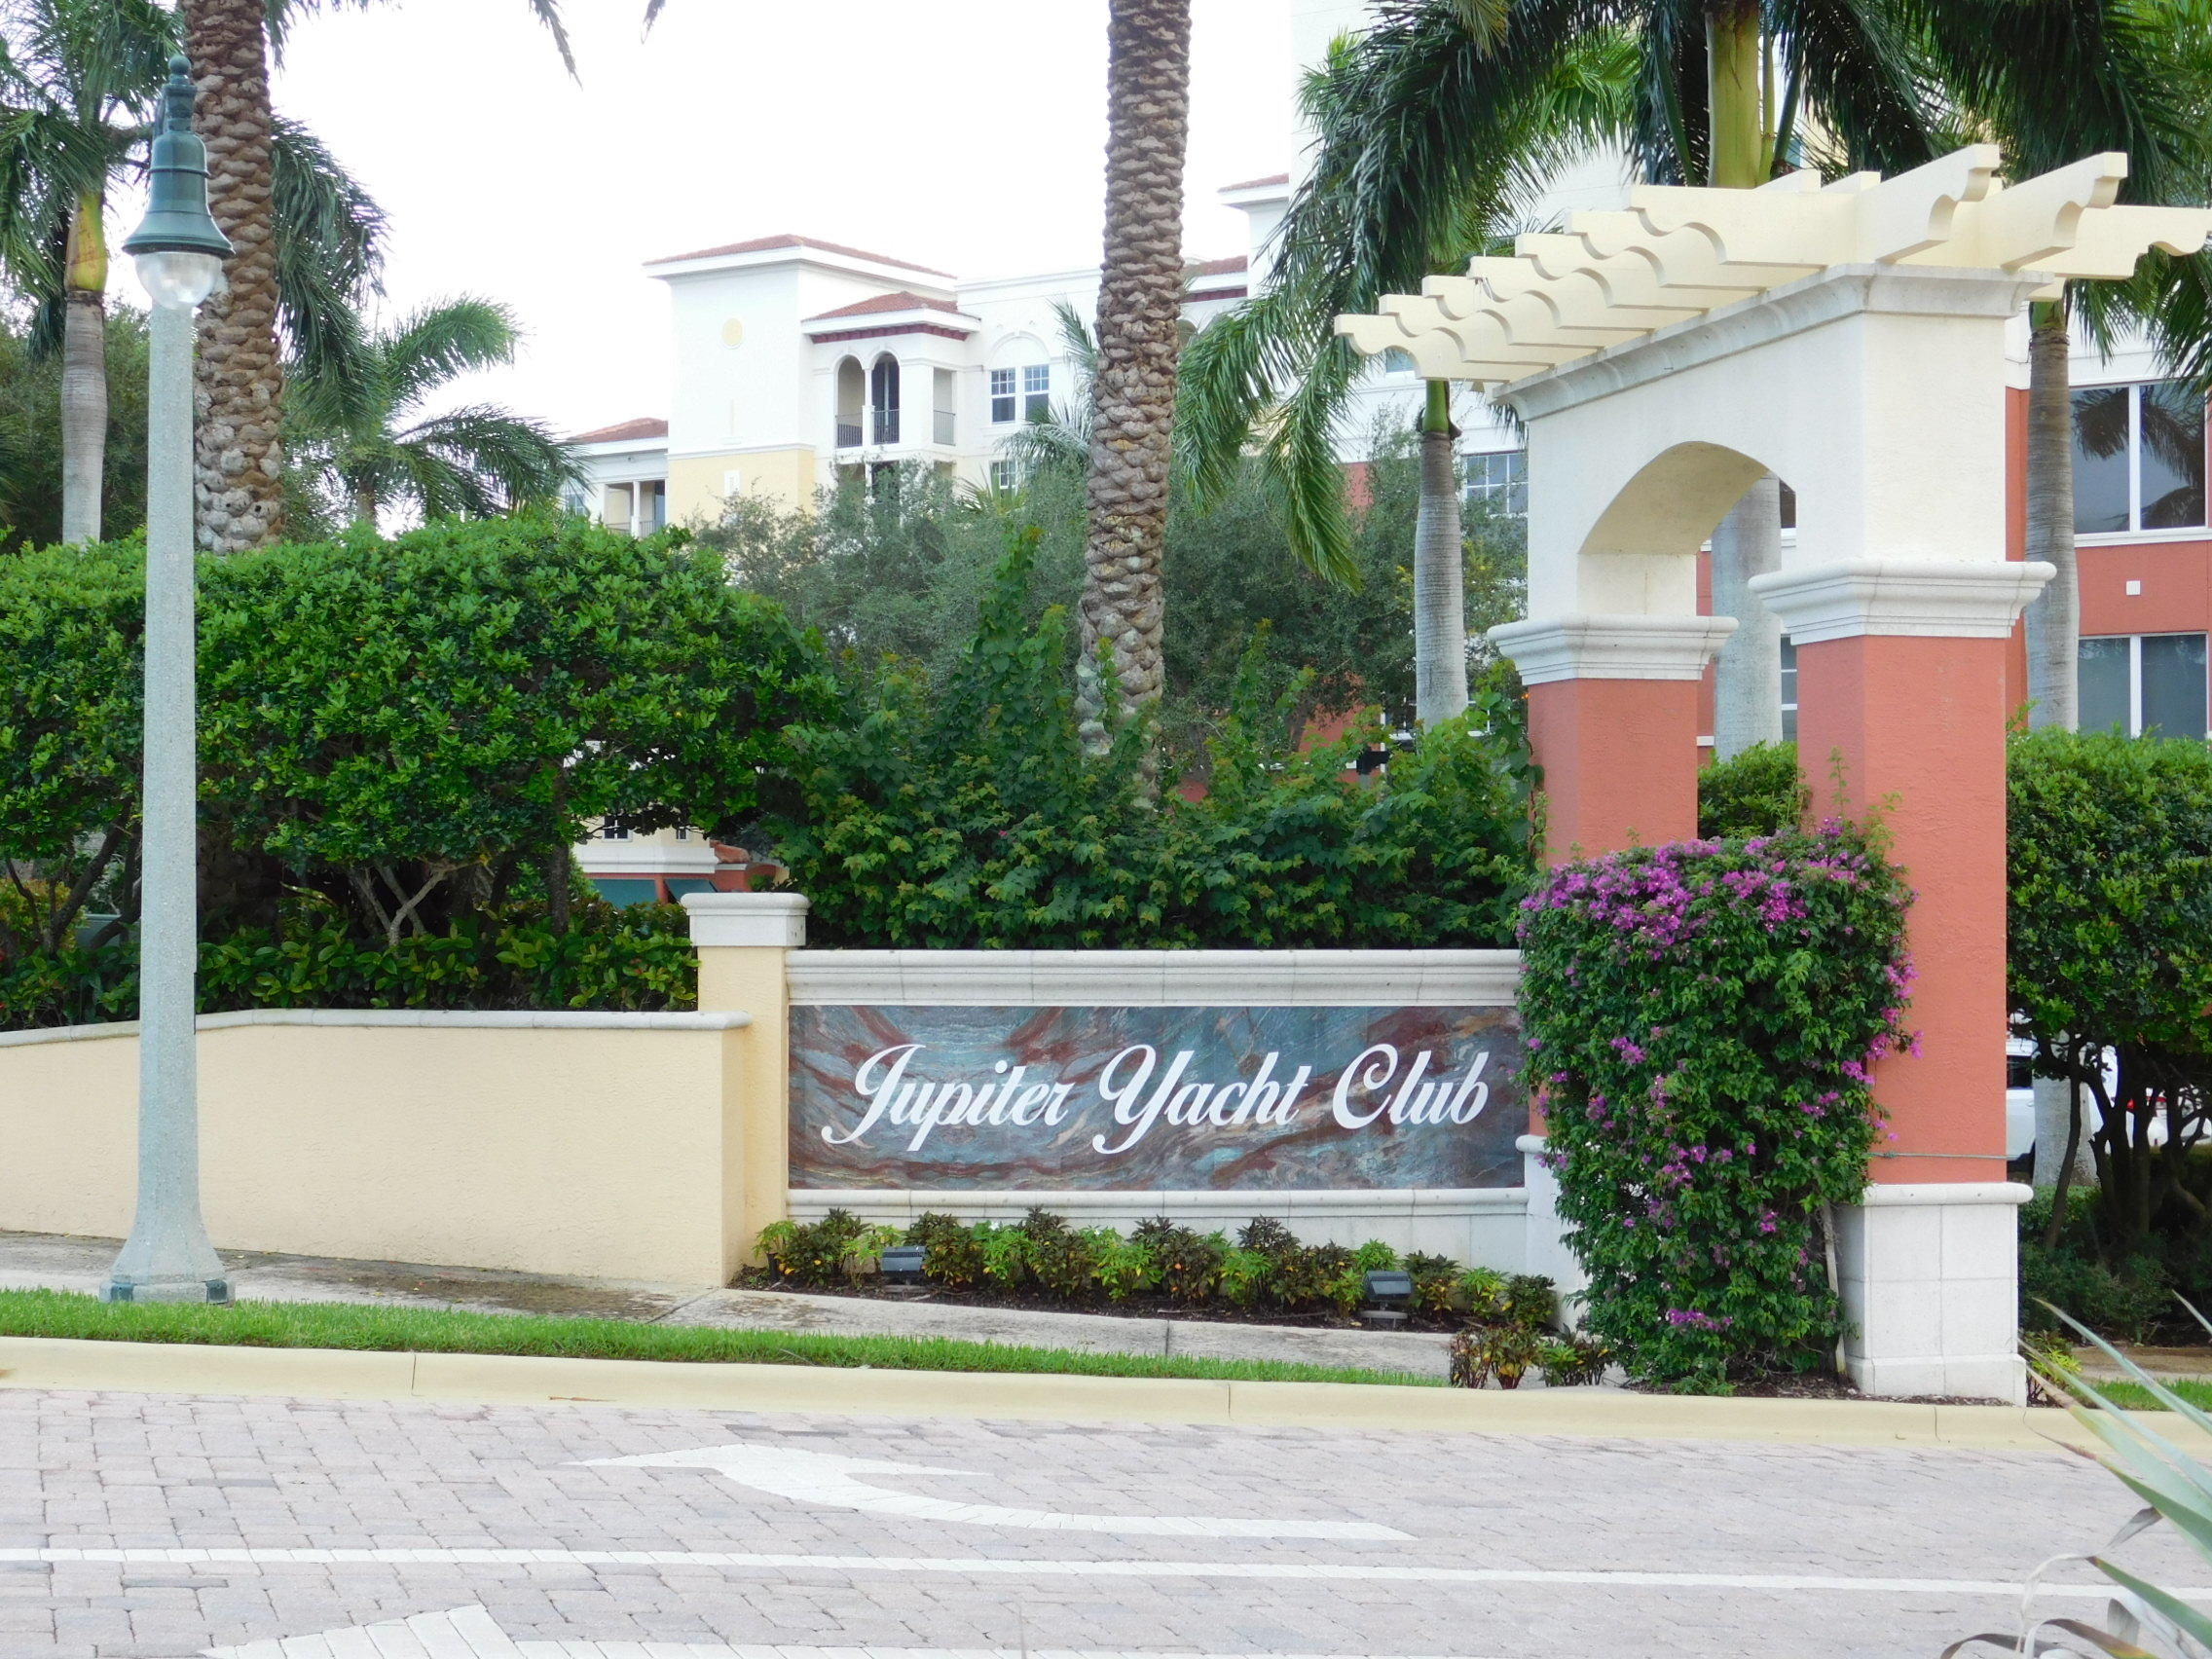 JUPITER YACHT CLUB JUPITER